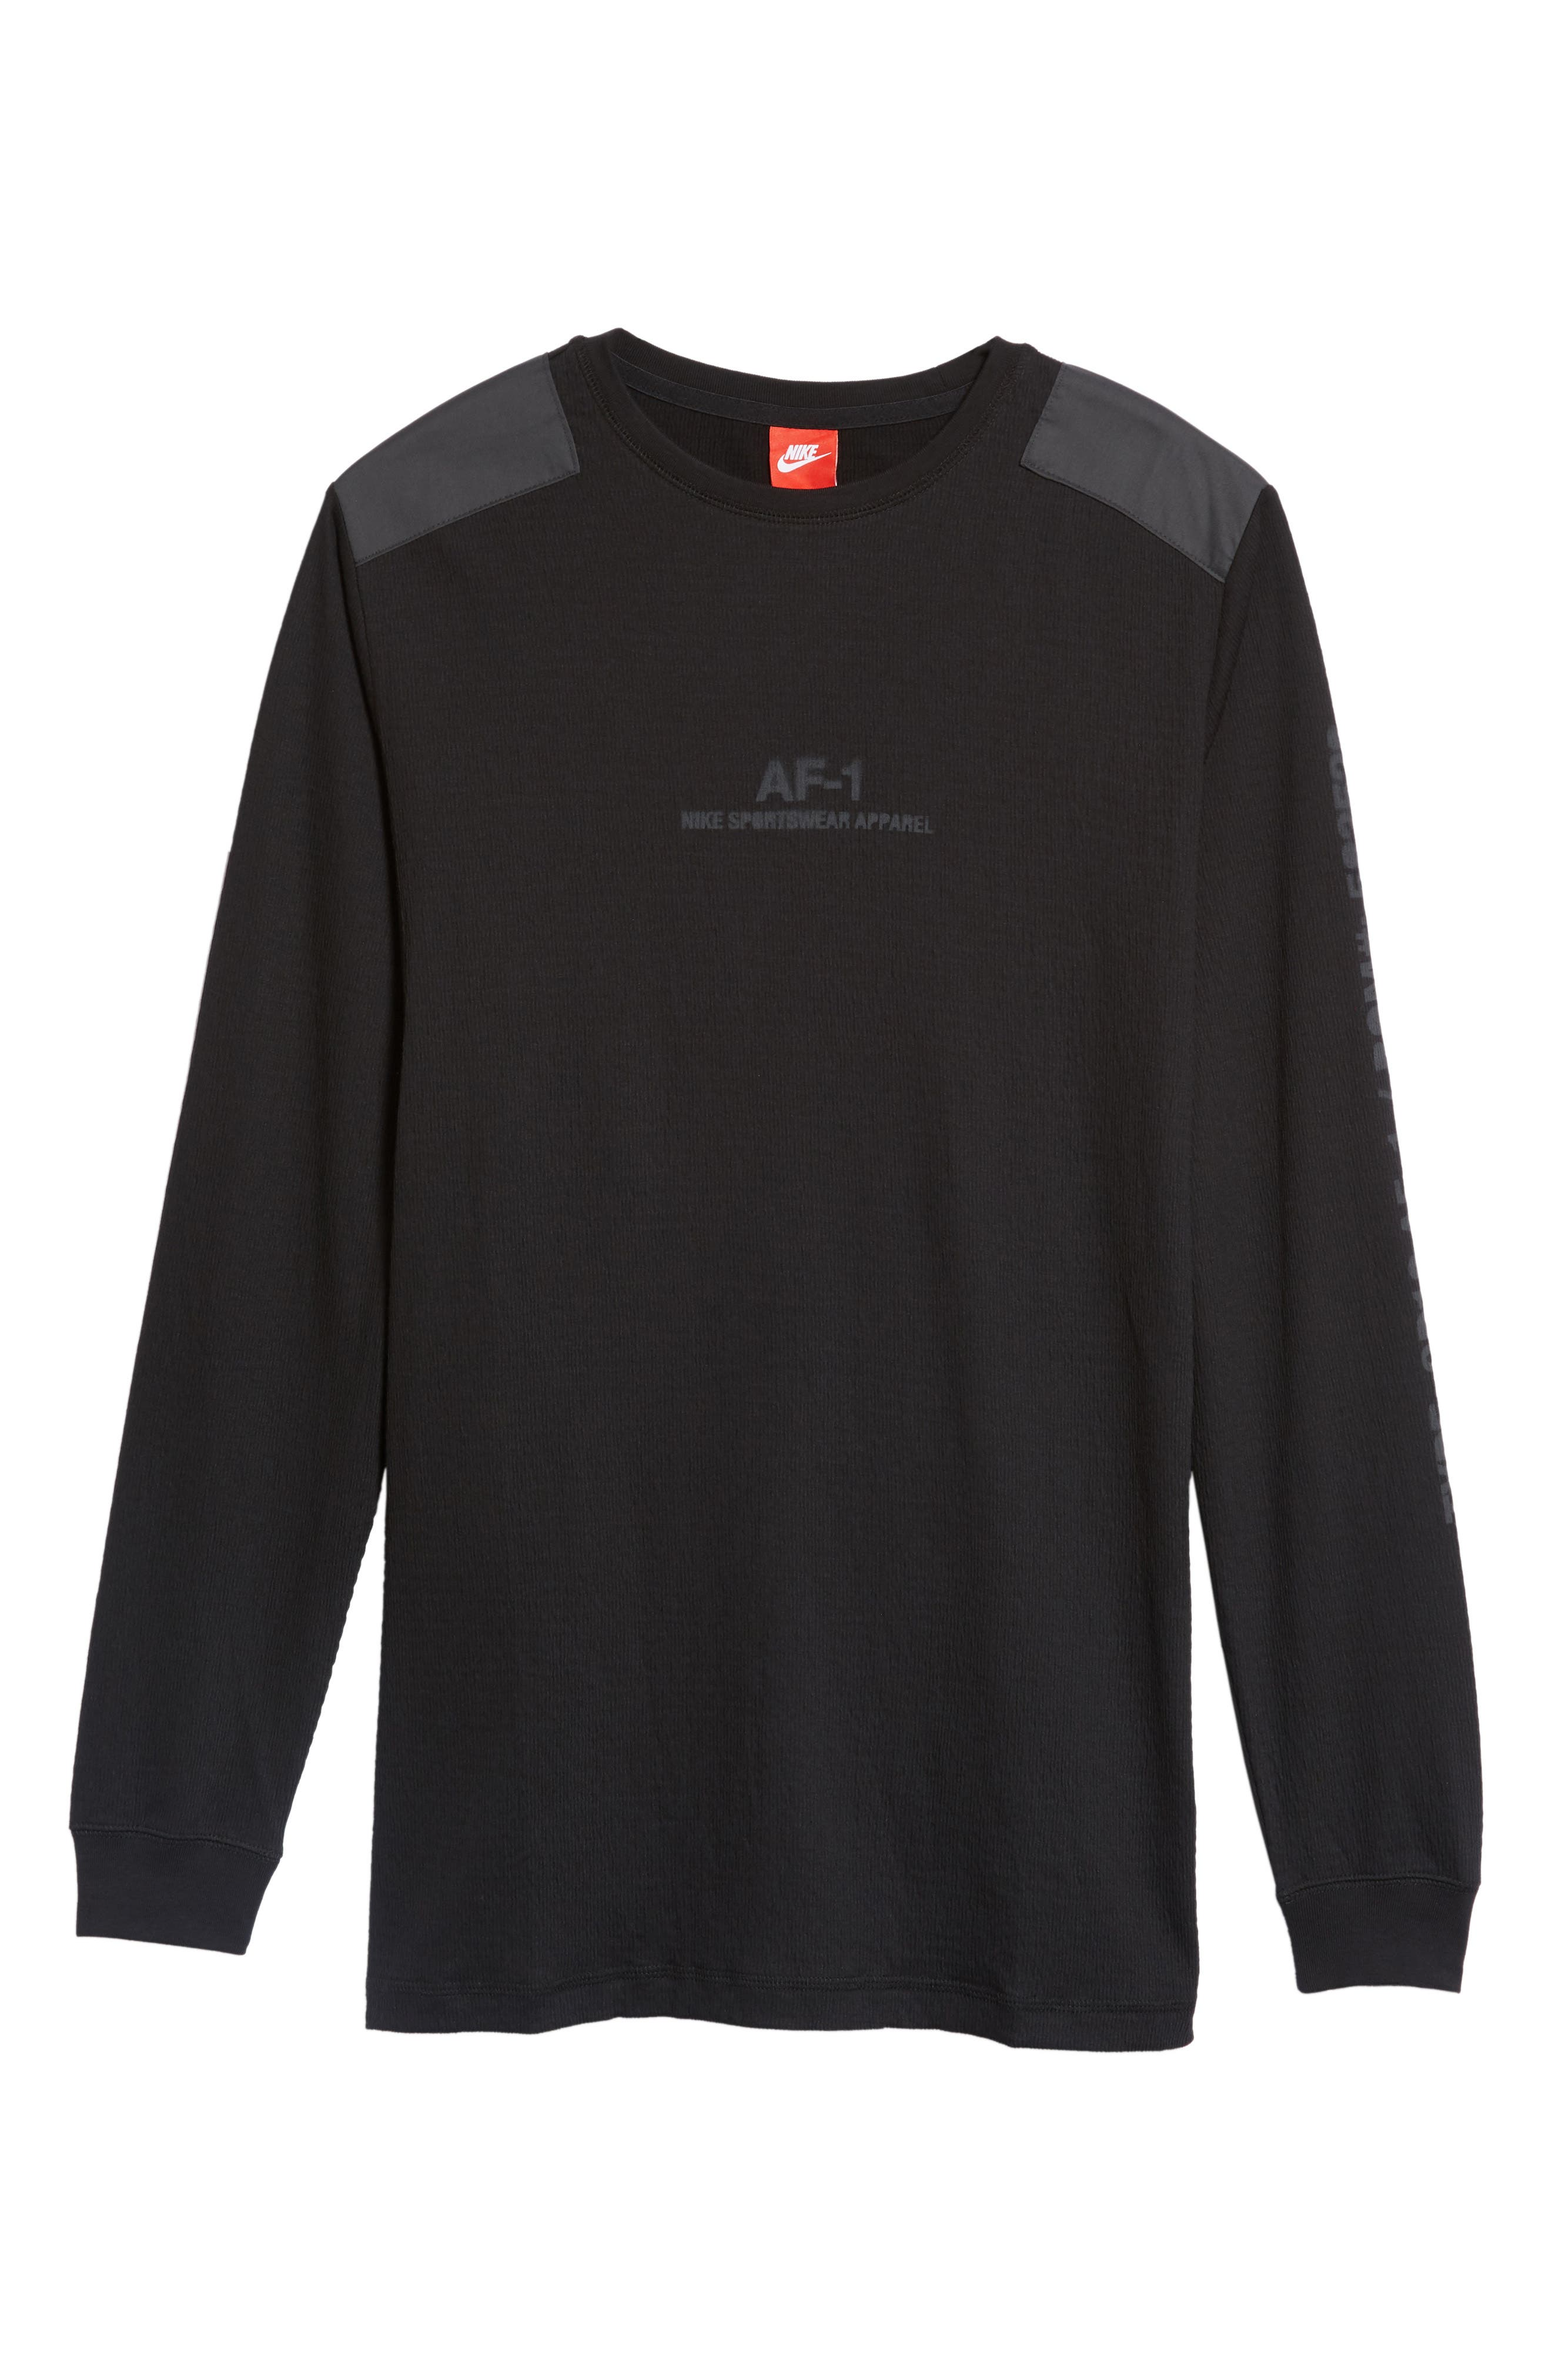 Sportswear AF-1 Long Sleeve Shirt,                             Alternate thumbnail 6, color,                             010